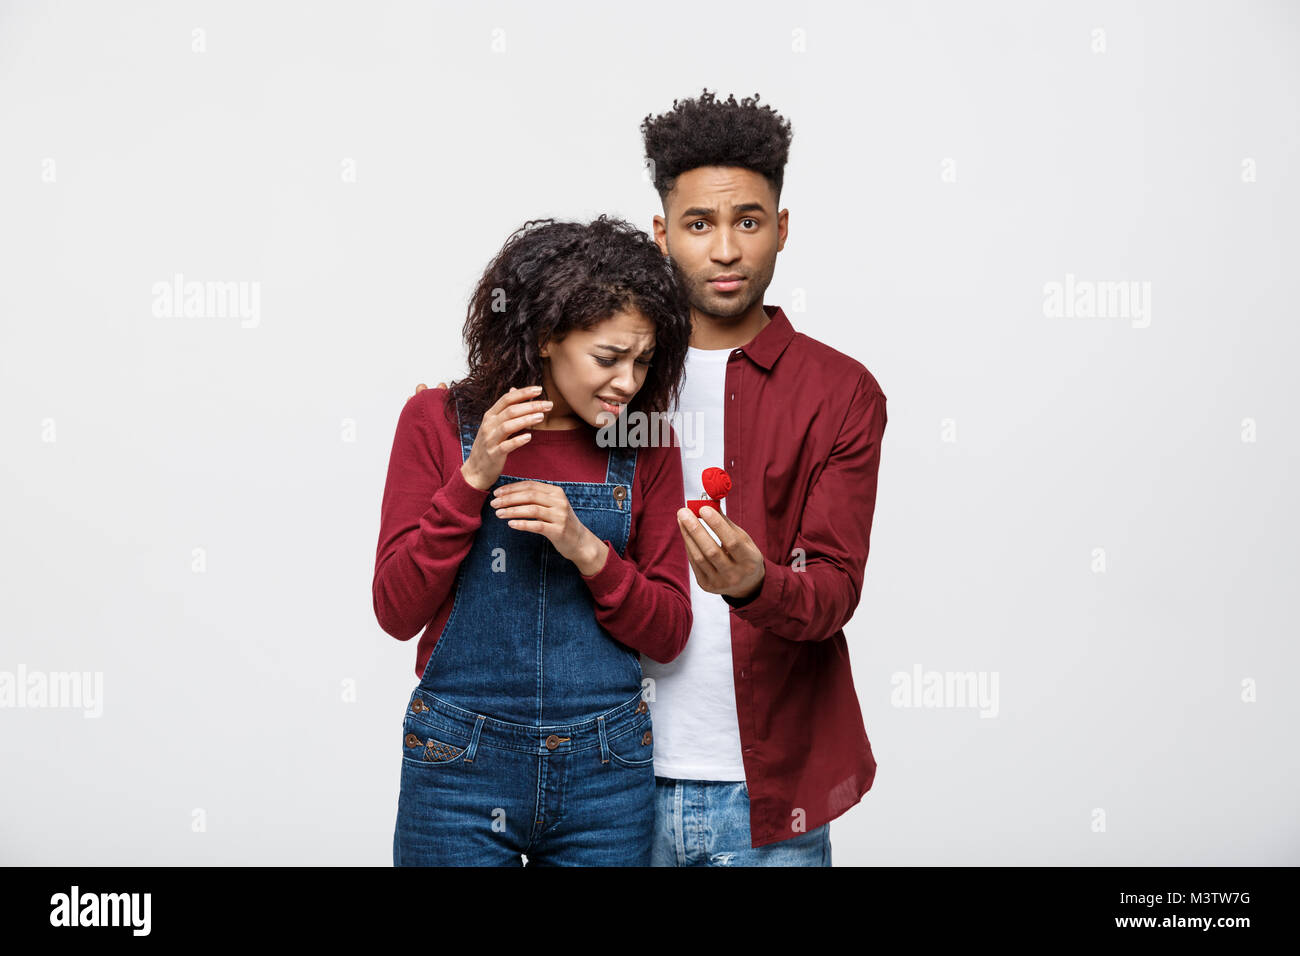 Young African American Scared girlfriend rejecting a marriage proposal. Humorous situation - Stock Image